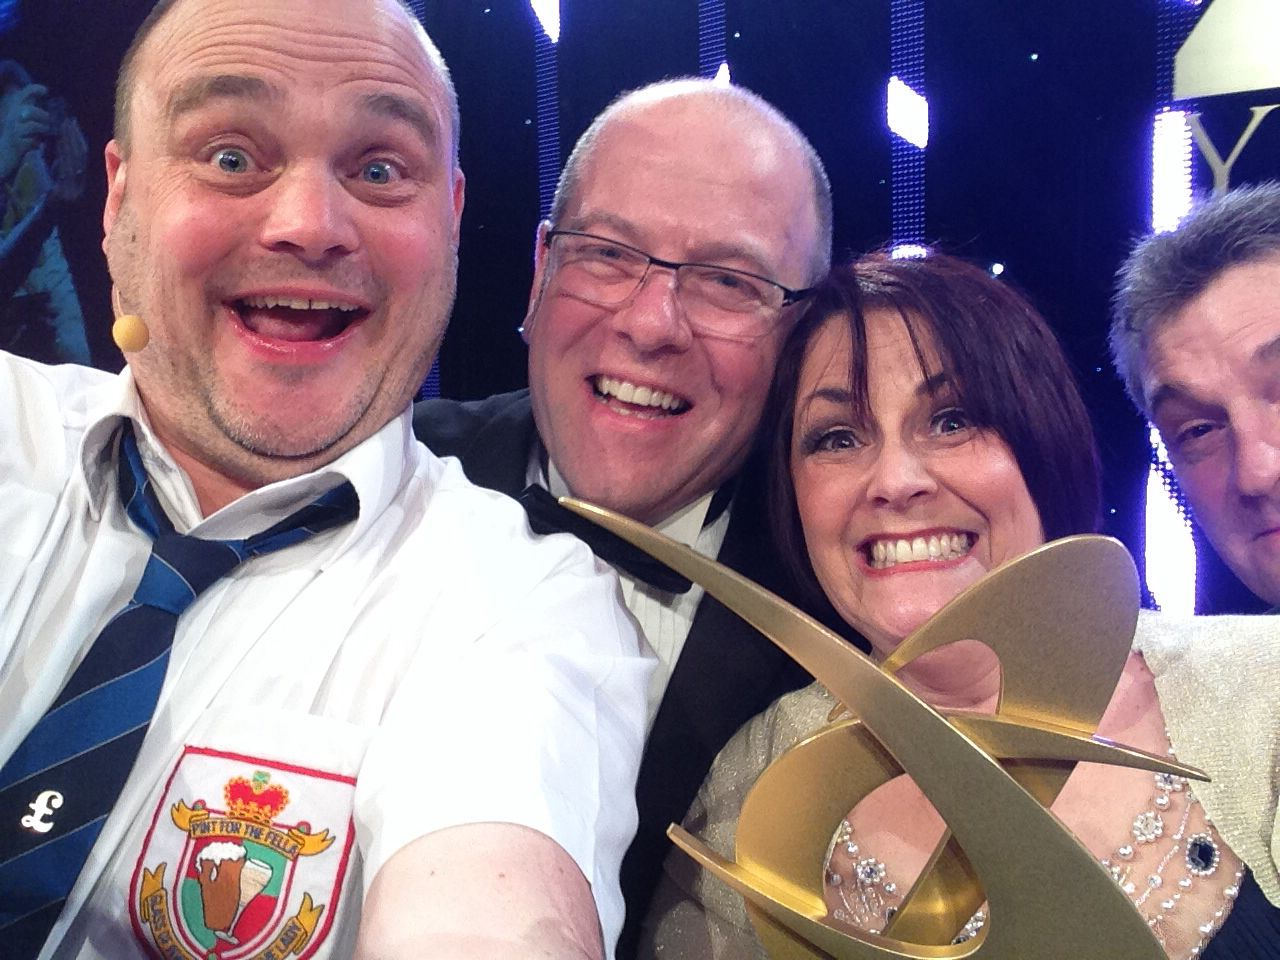 Selfie at the KBB Review awards with Al Murray